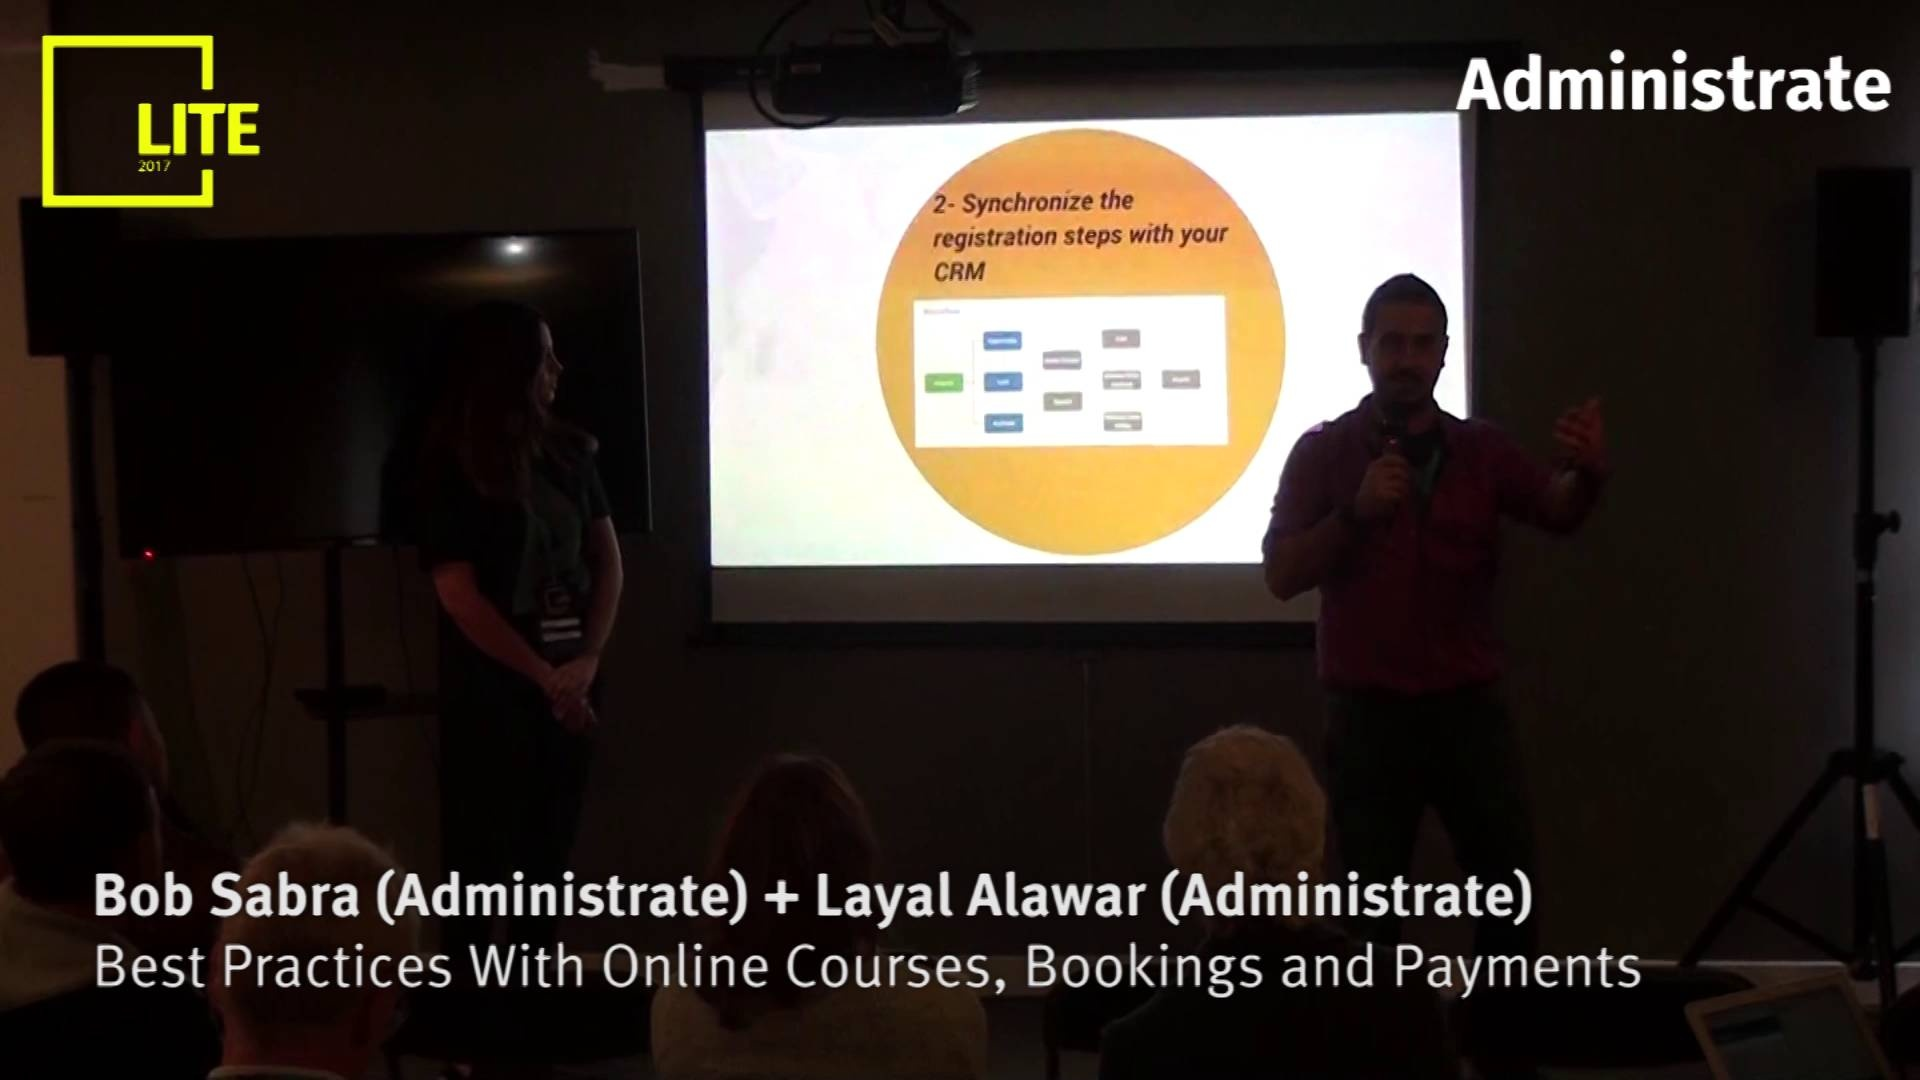 Best Practices With Online Courses, Bookings and Payments [Bob Sabra & Layal Alawar]